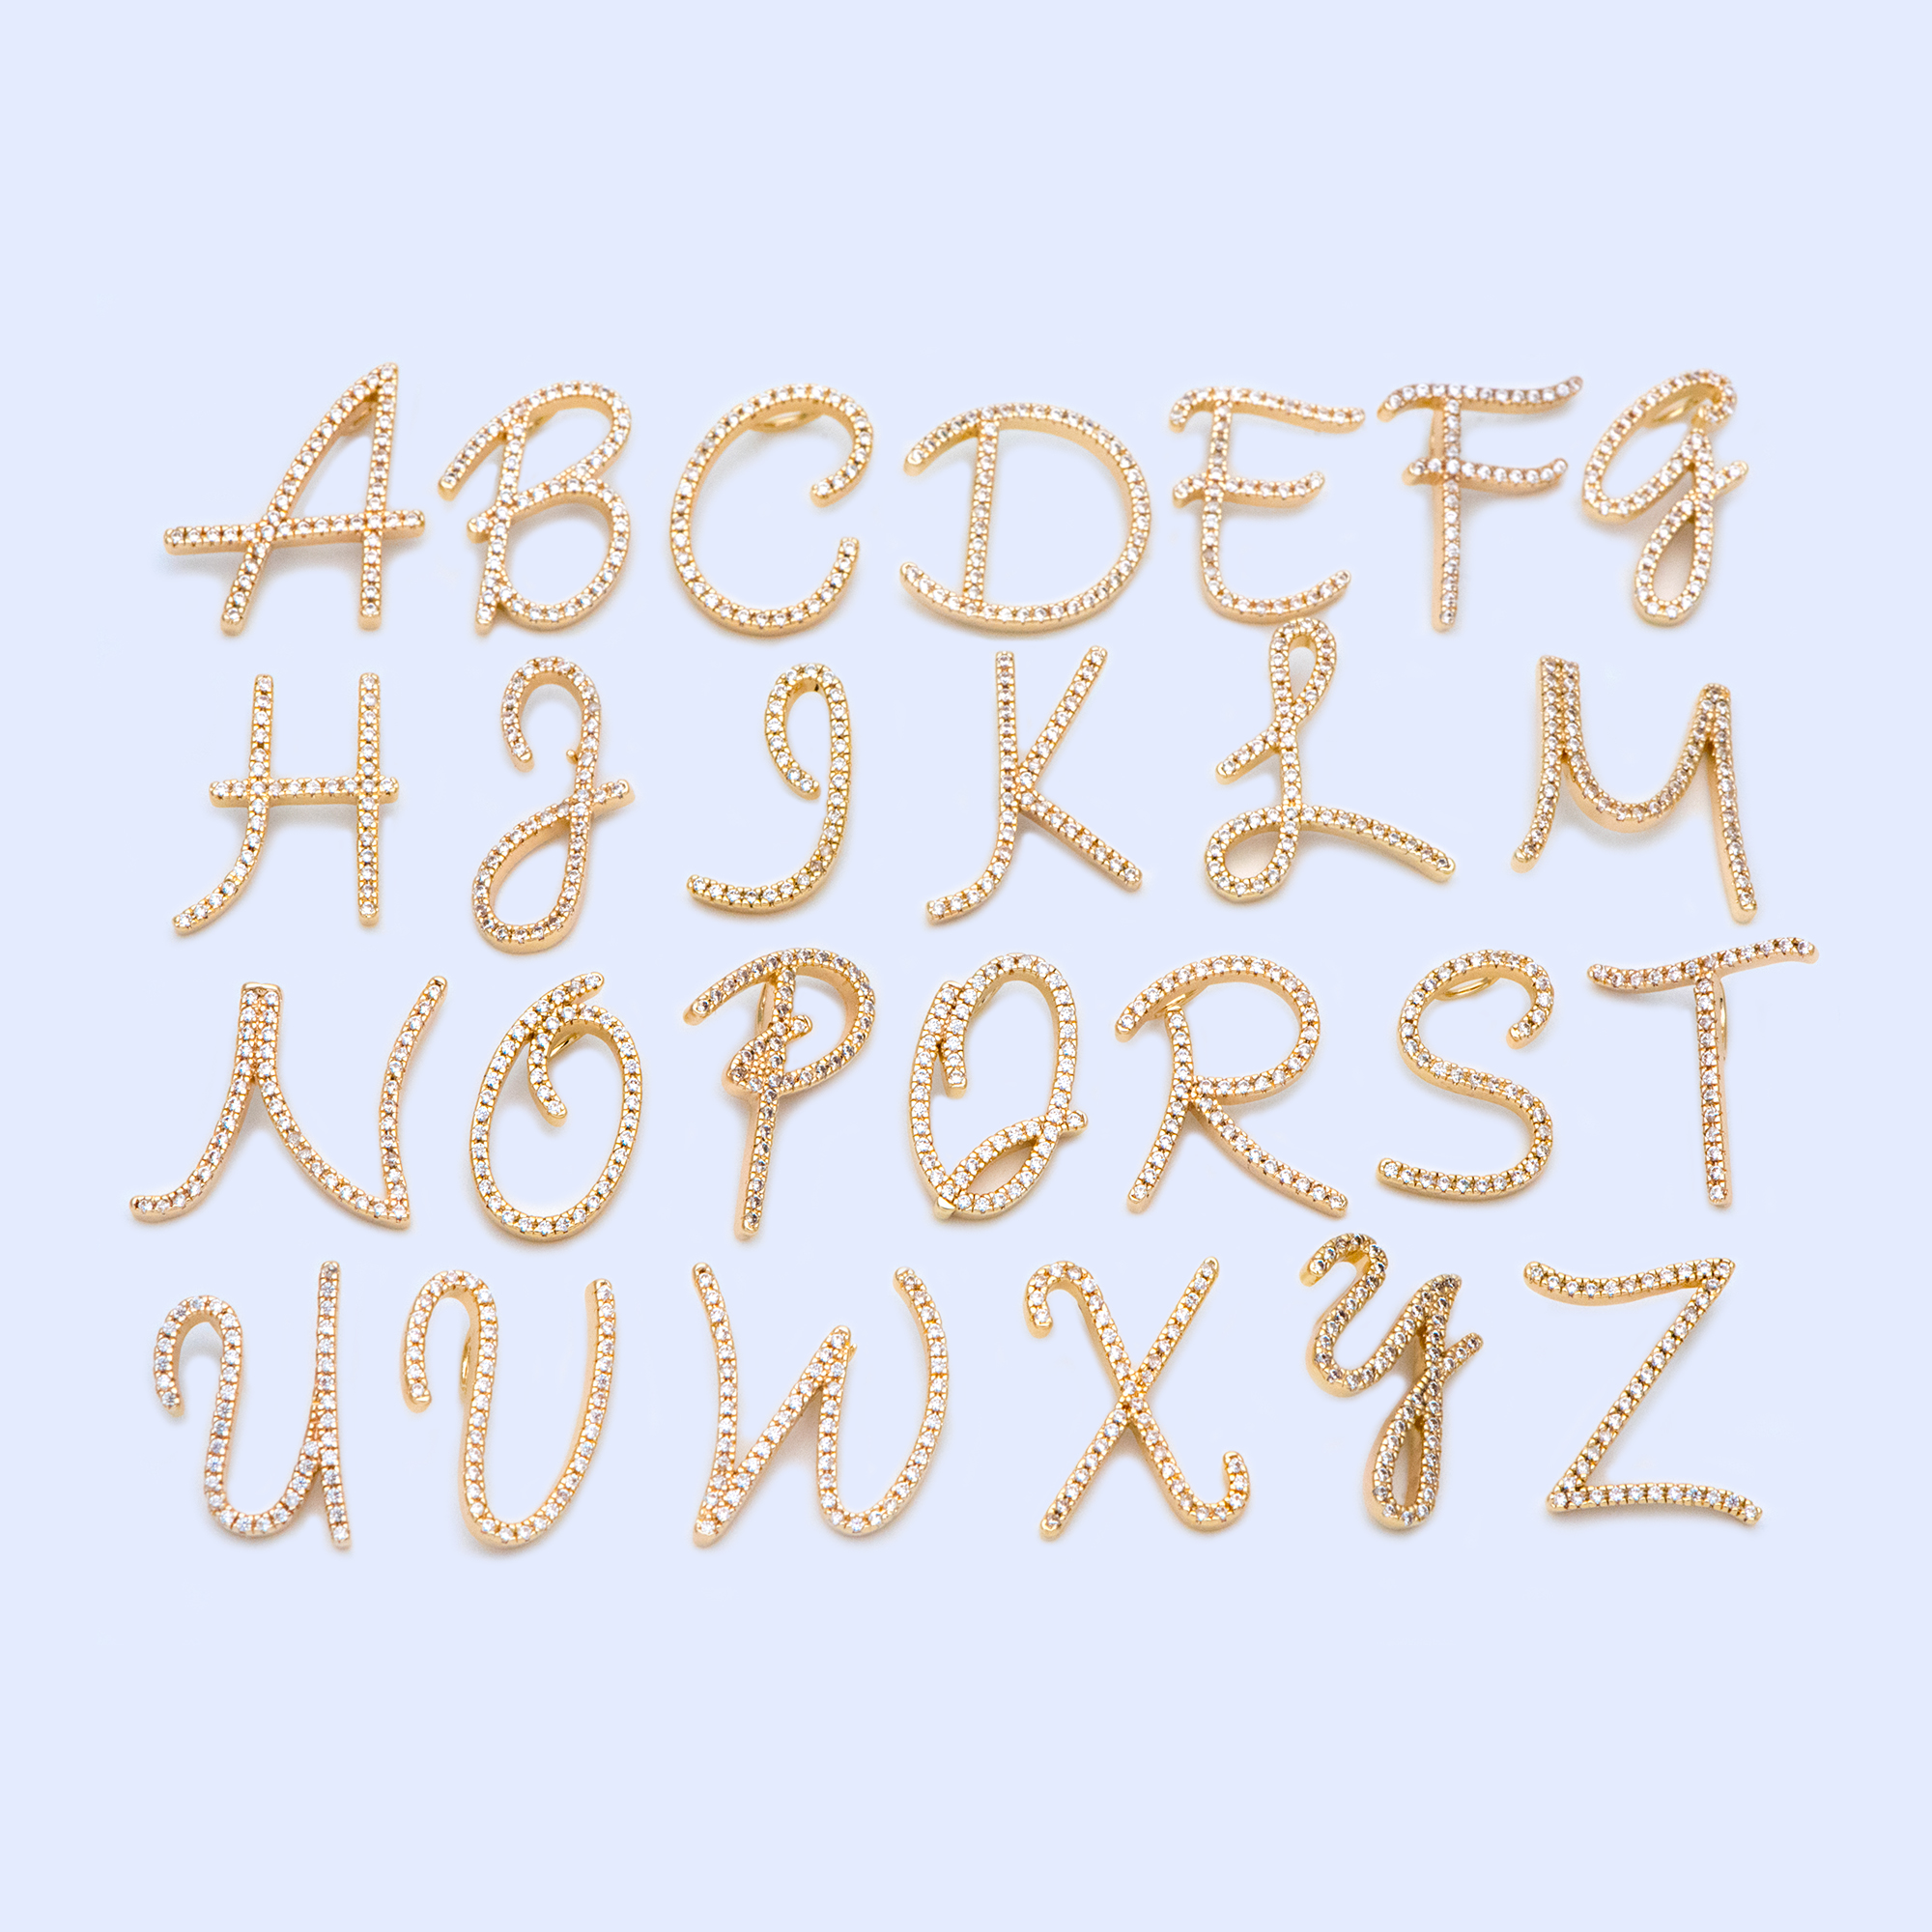 CZ Paved Gold Alphabet Pendants, 18K Gold Plated Brass, English Letter Charm, You Choose Letter (GB-1140)